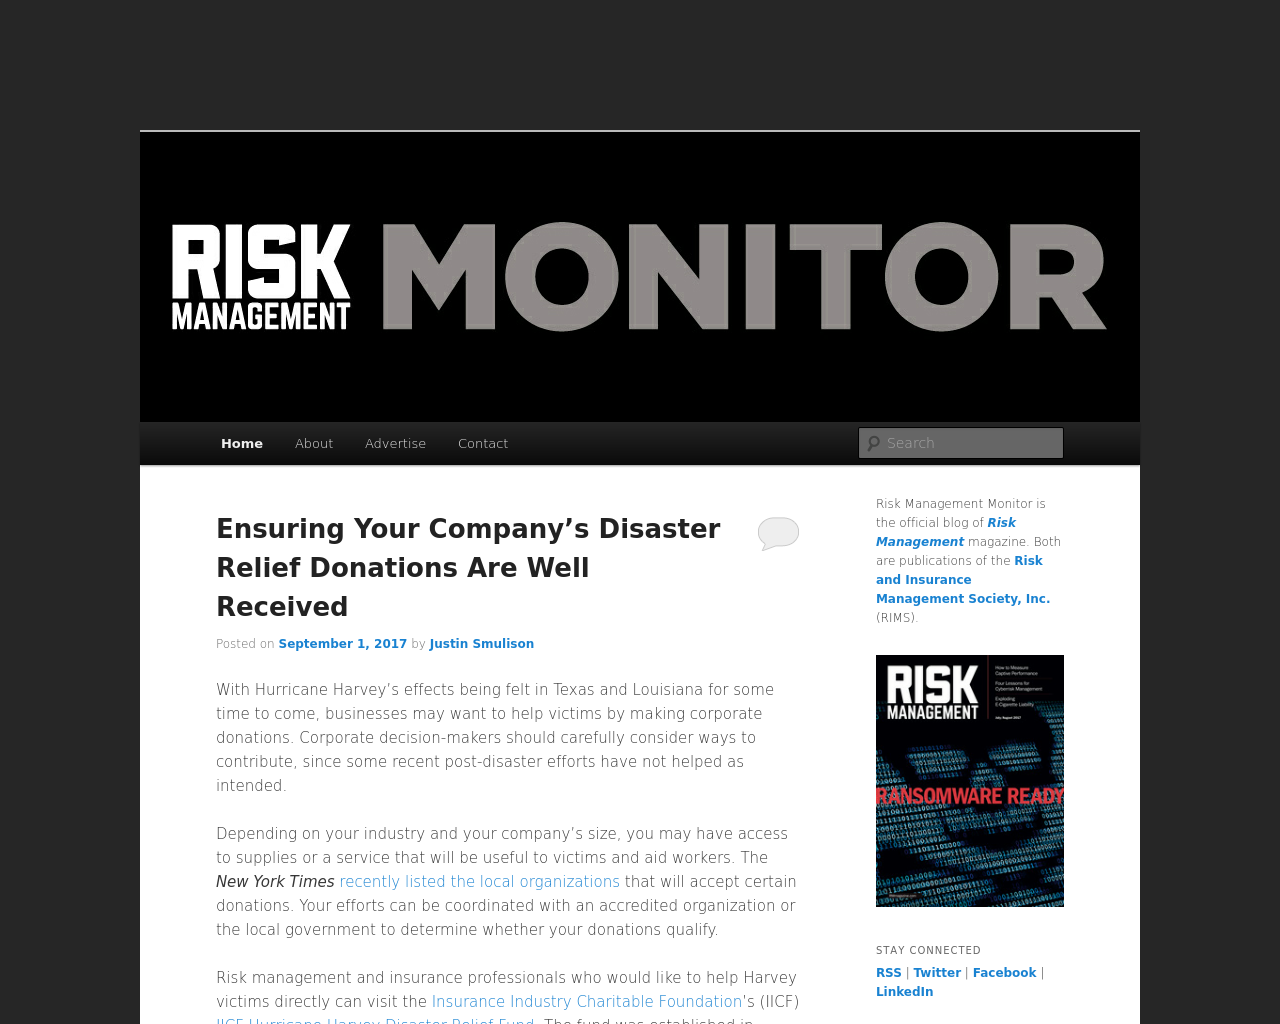 Risk-Management-Monitor-Advertising-Reviews-Pricing